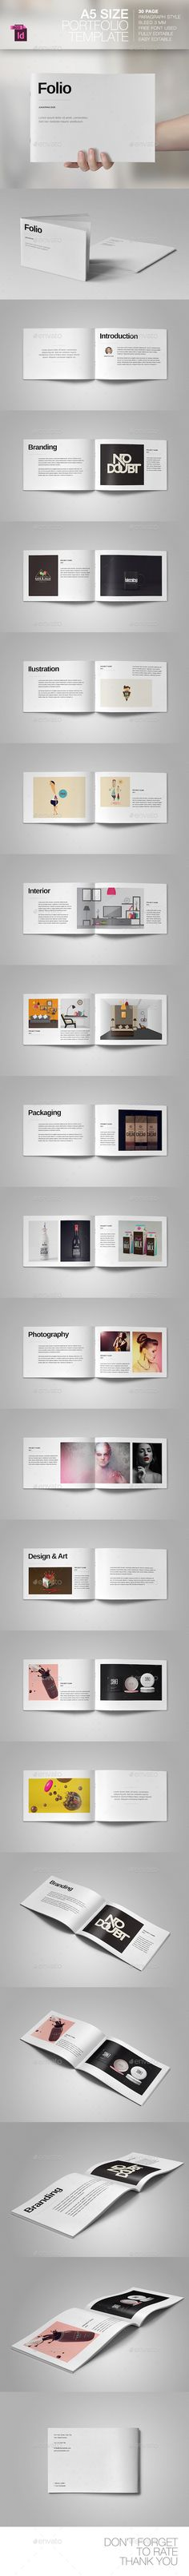 Buy Portfolio Template by meenom on GraphicRiver. Portfolio Template File Include : 30 Pages Size . Portfolio Design, Portfolio Book, Portfolio Layout, Template Portfolio, Indesign Portfolio, Branding Portfolio, Portfolio Ideas, Book Design, Layout Design